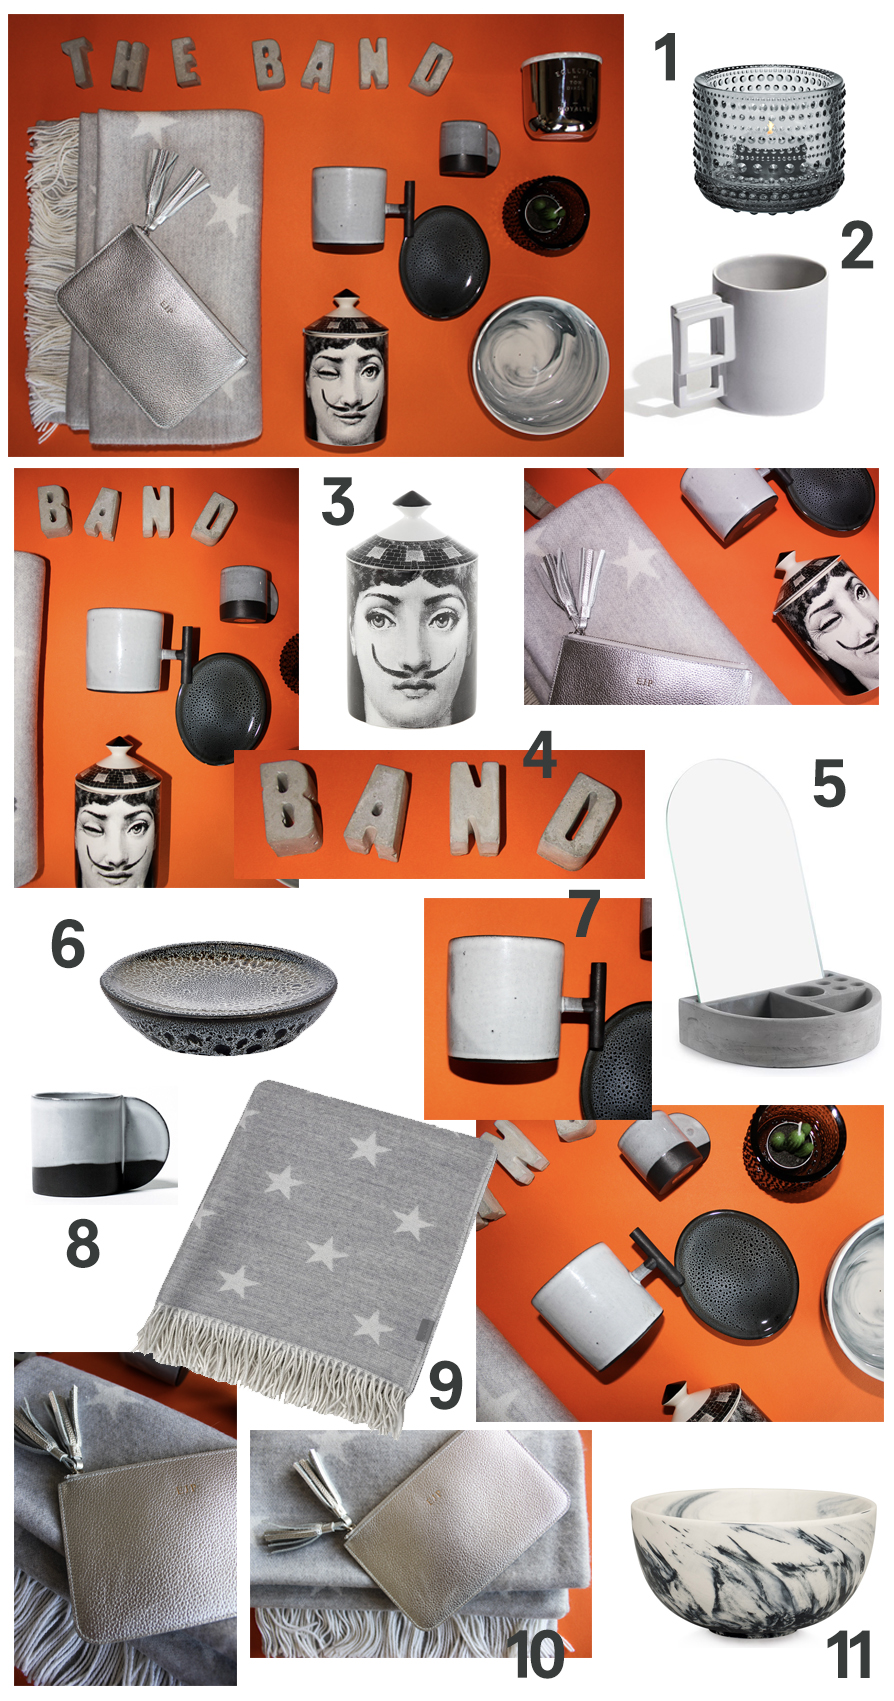 Emma-Jane-Palin-Christmas-Gift-Guide-Colour-Grey